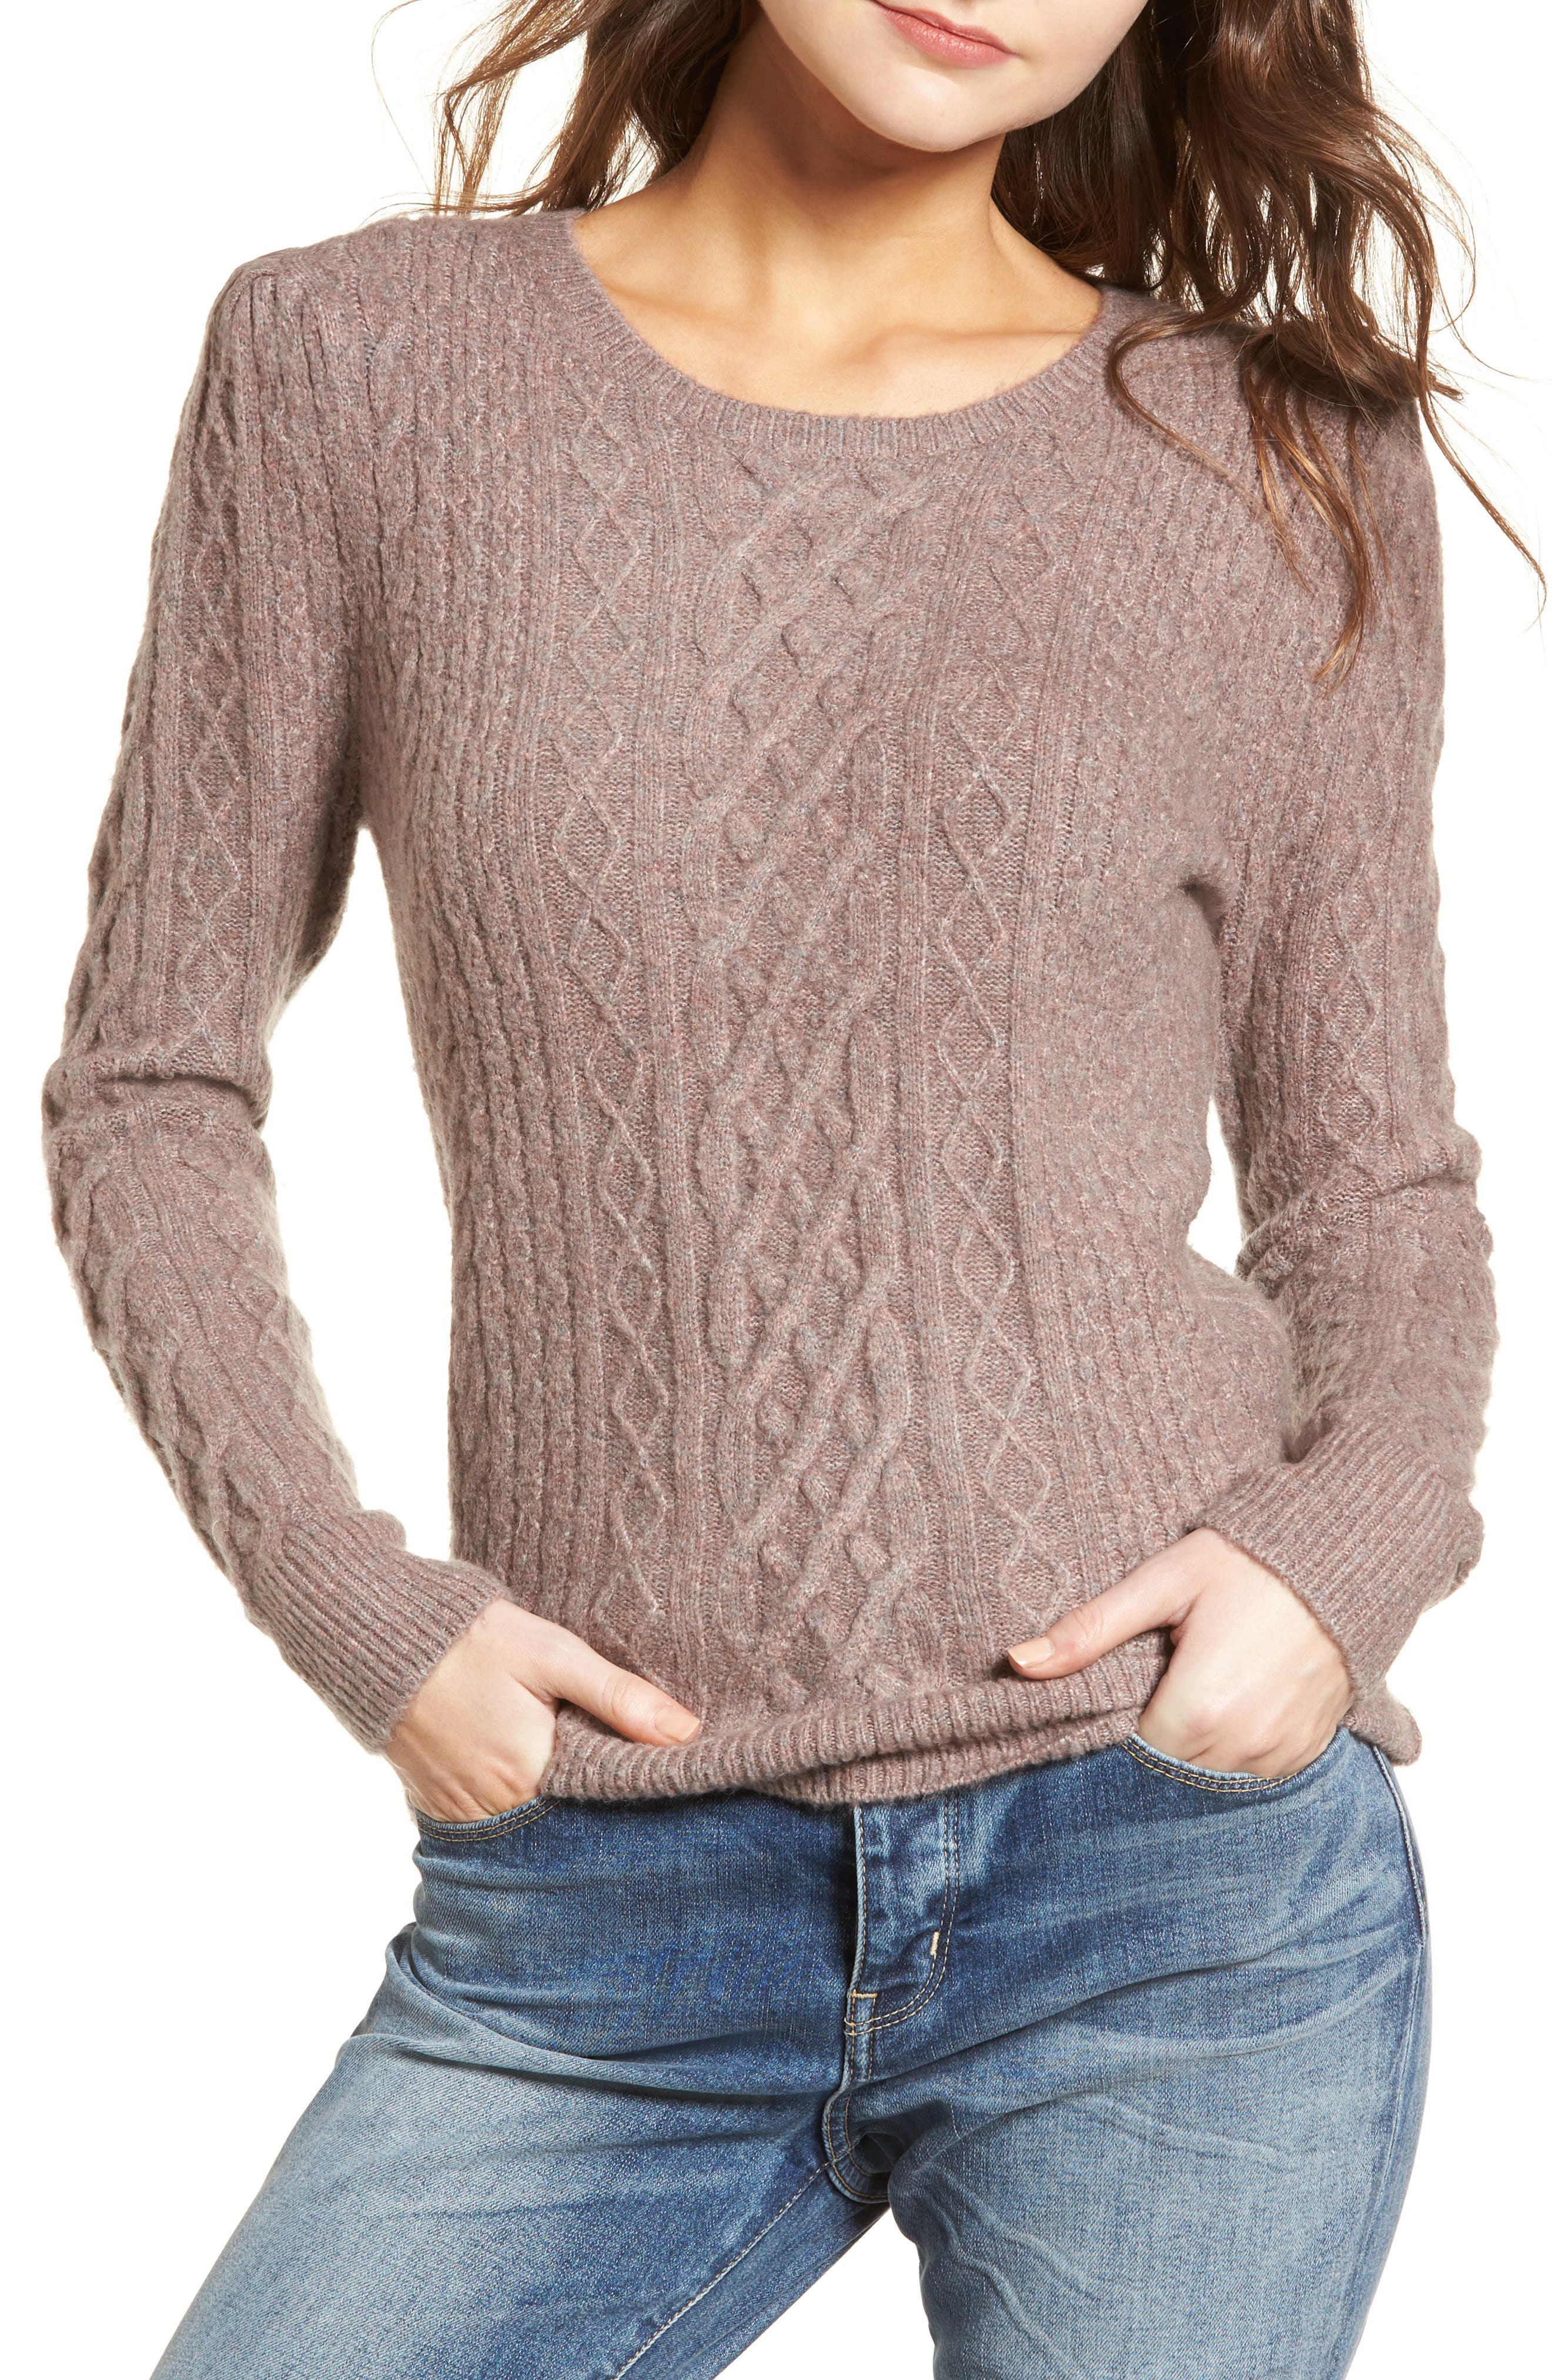 Compact Cable Sweater,                             Main thumbnail 1, color,                             650